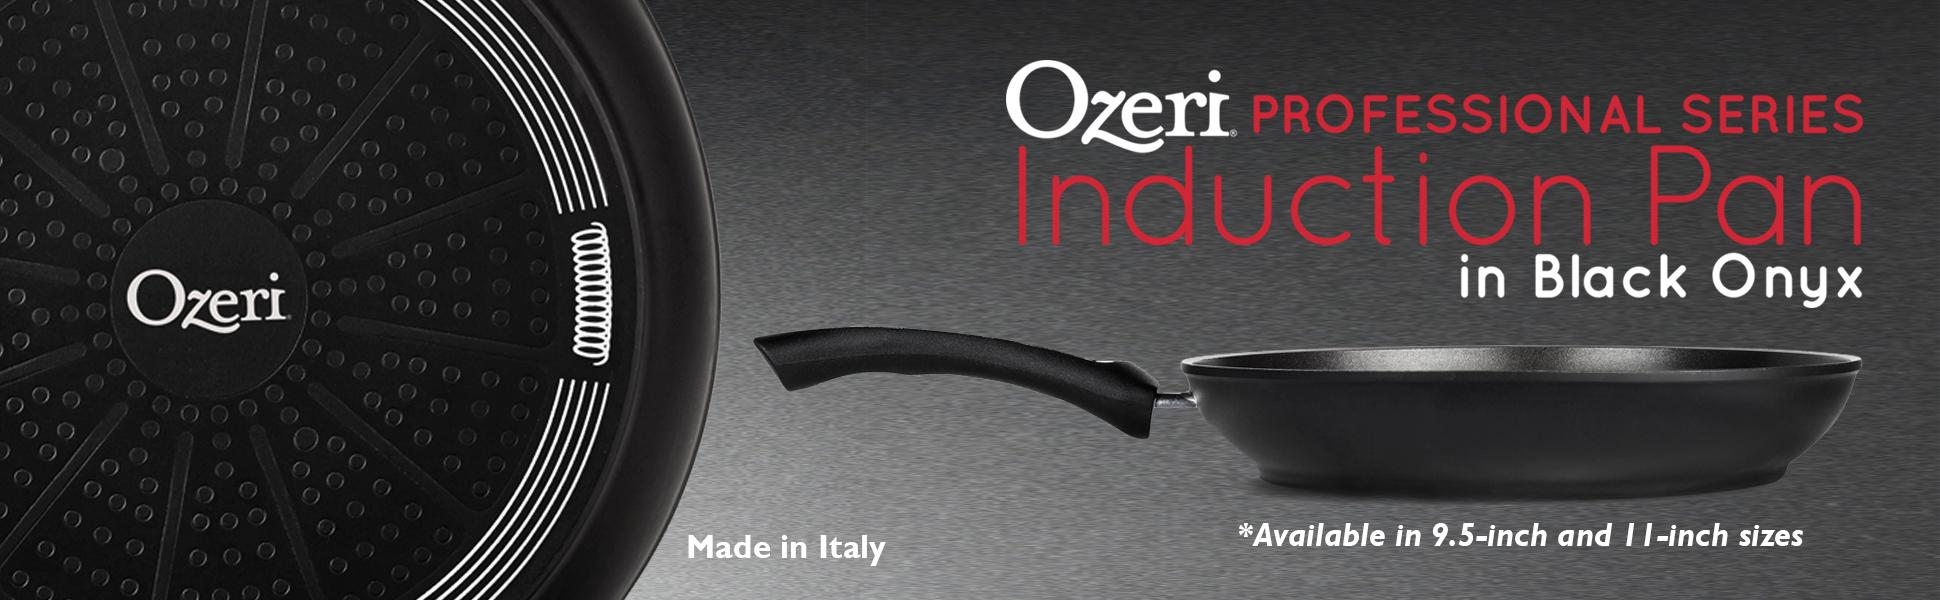 Amazon Com Ozeri Professional Series Induction Fry Pan In